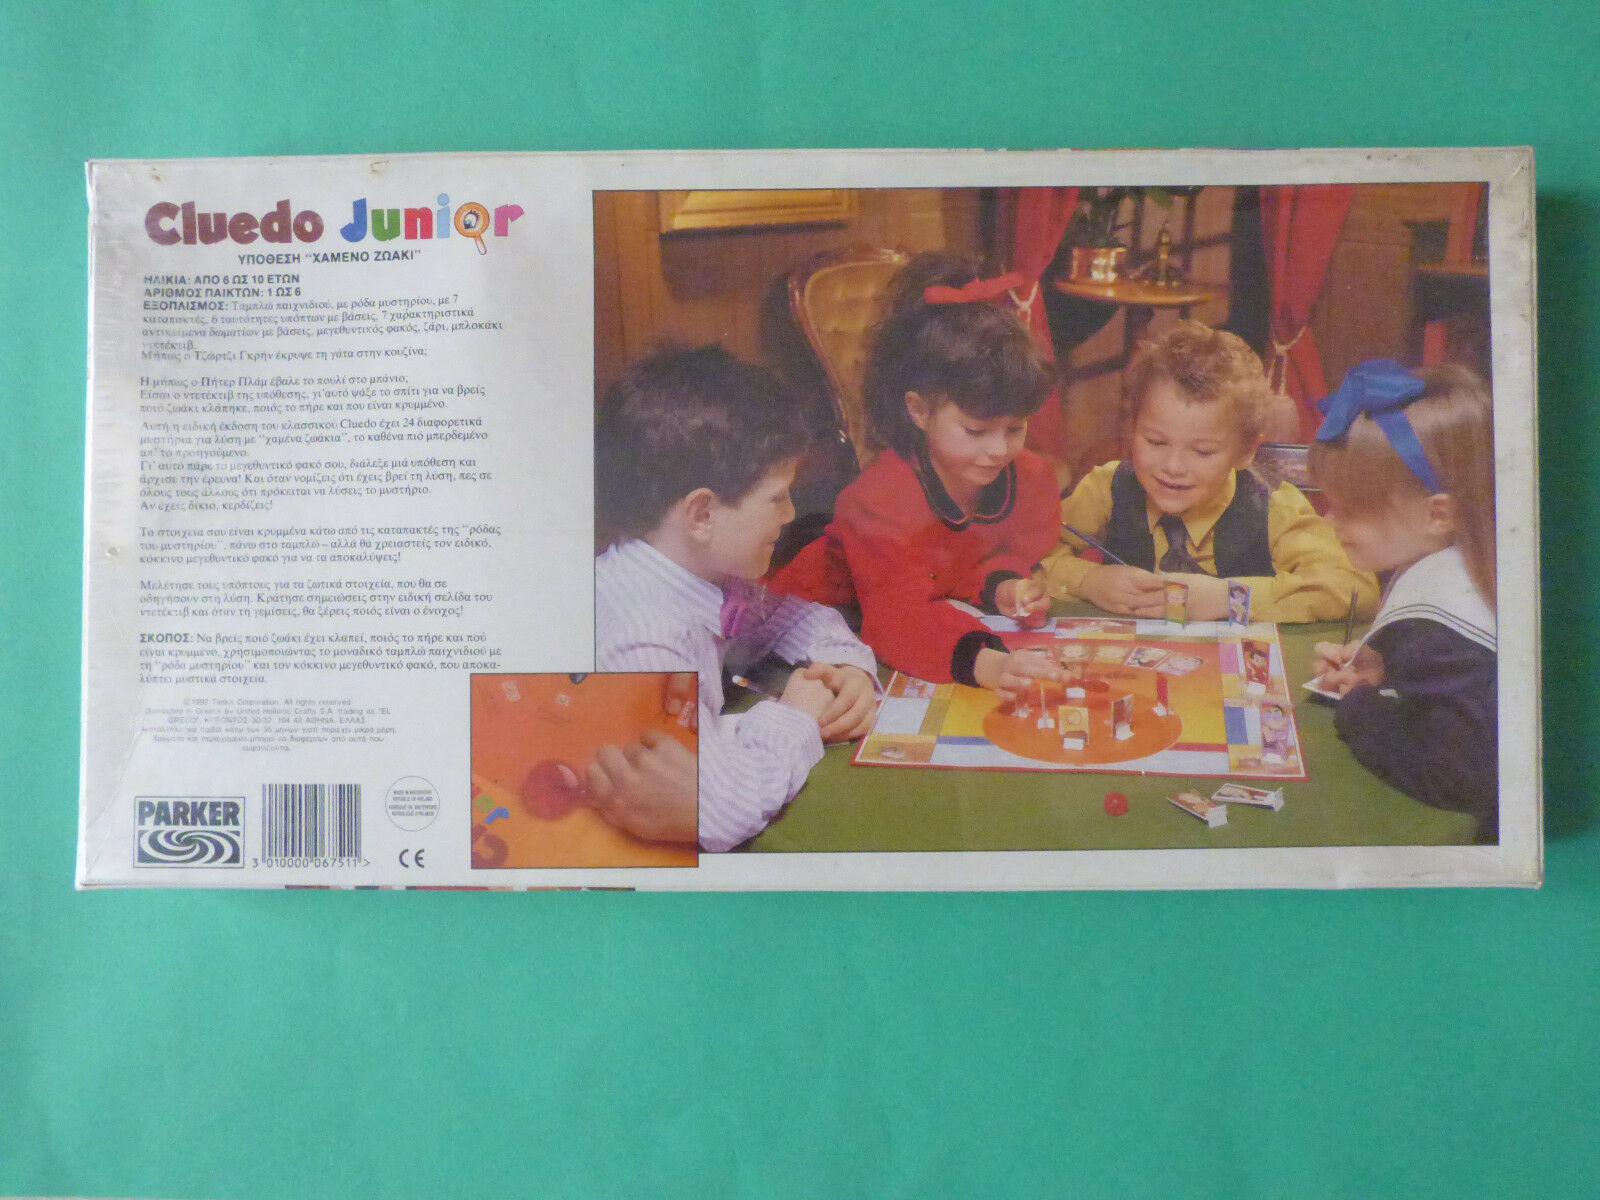 VINTAGE GREEK GREEK GREEK 1992 CLUEDO JUNIOR BY PARKER BOARD GAME SEALED ee51d3